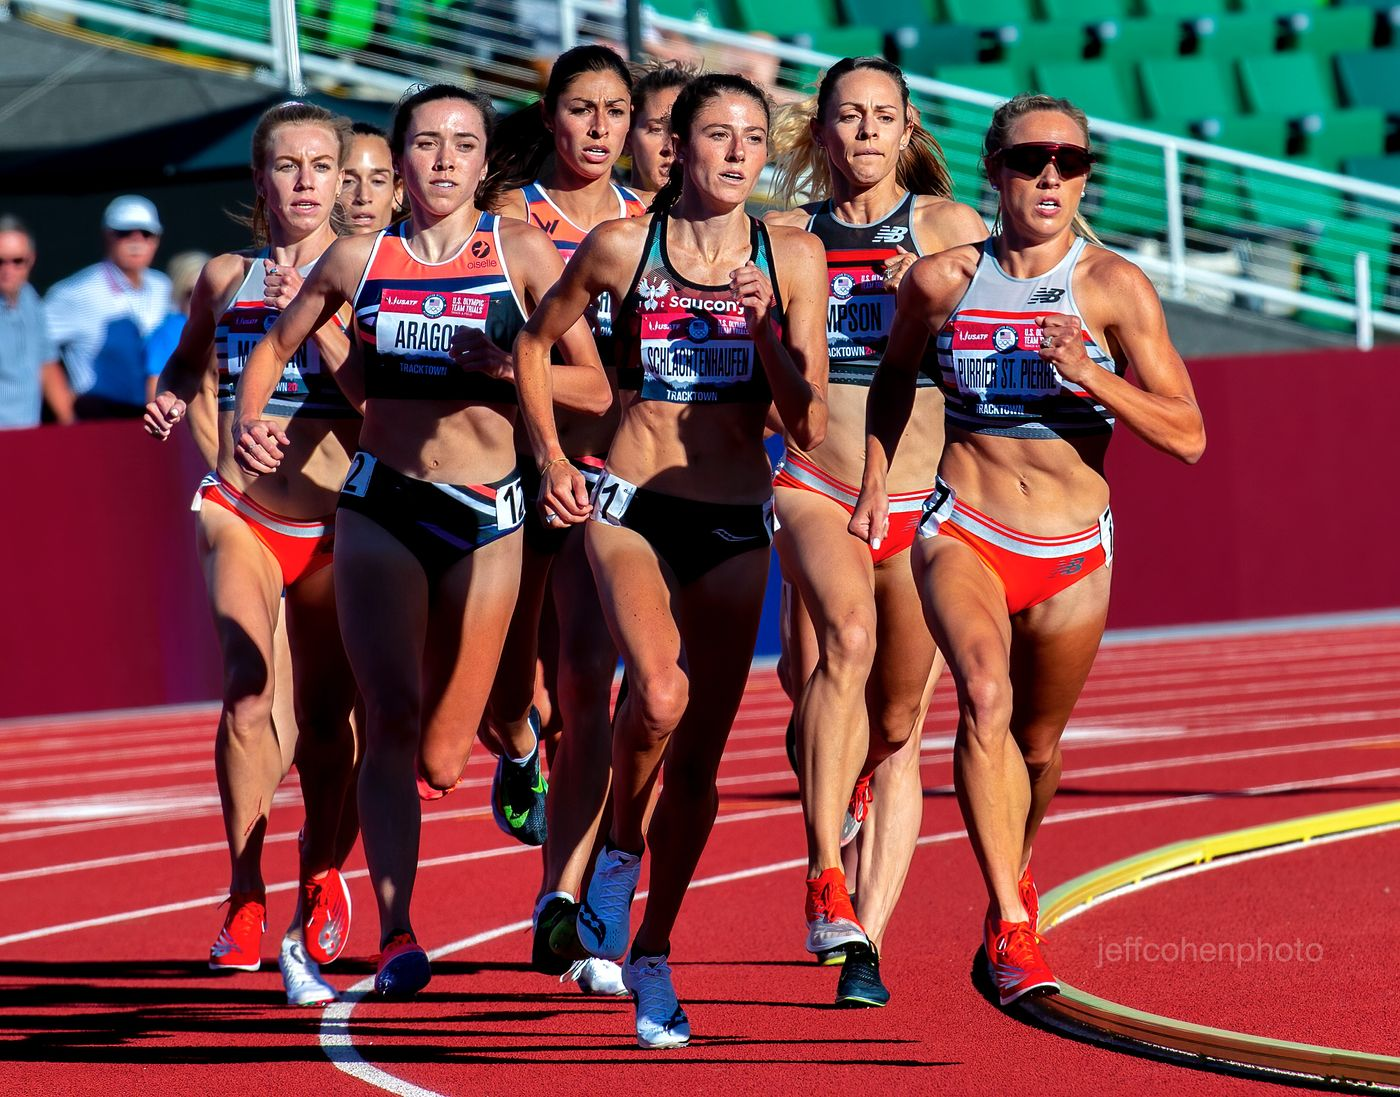 purrier-5000w-2021-US-Oly-Trials-day-2-1451-jeff-cohen-photo--web.jpg